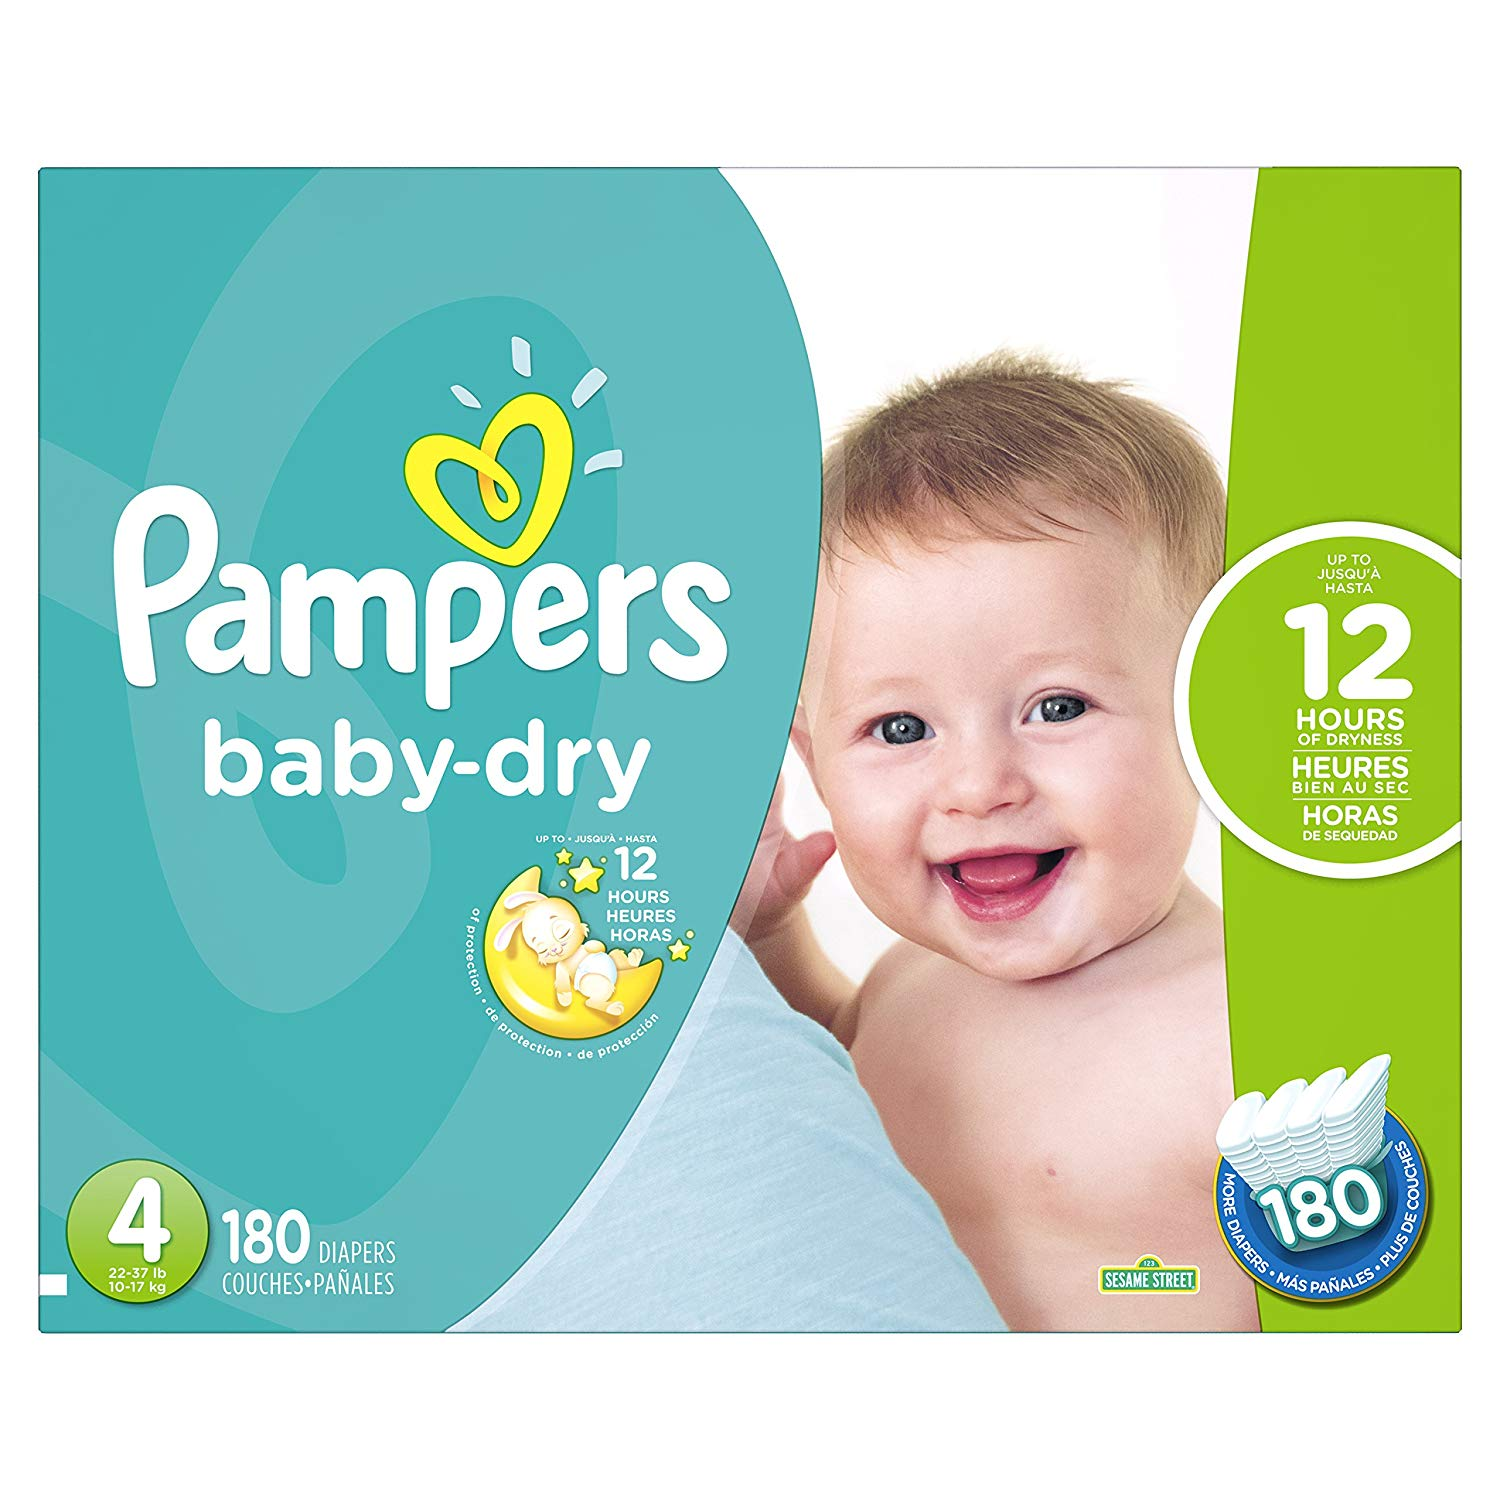 Pampers Baby-Dry Disposable Diapers